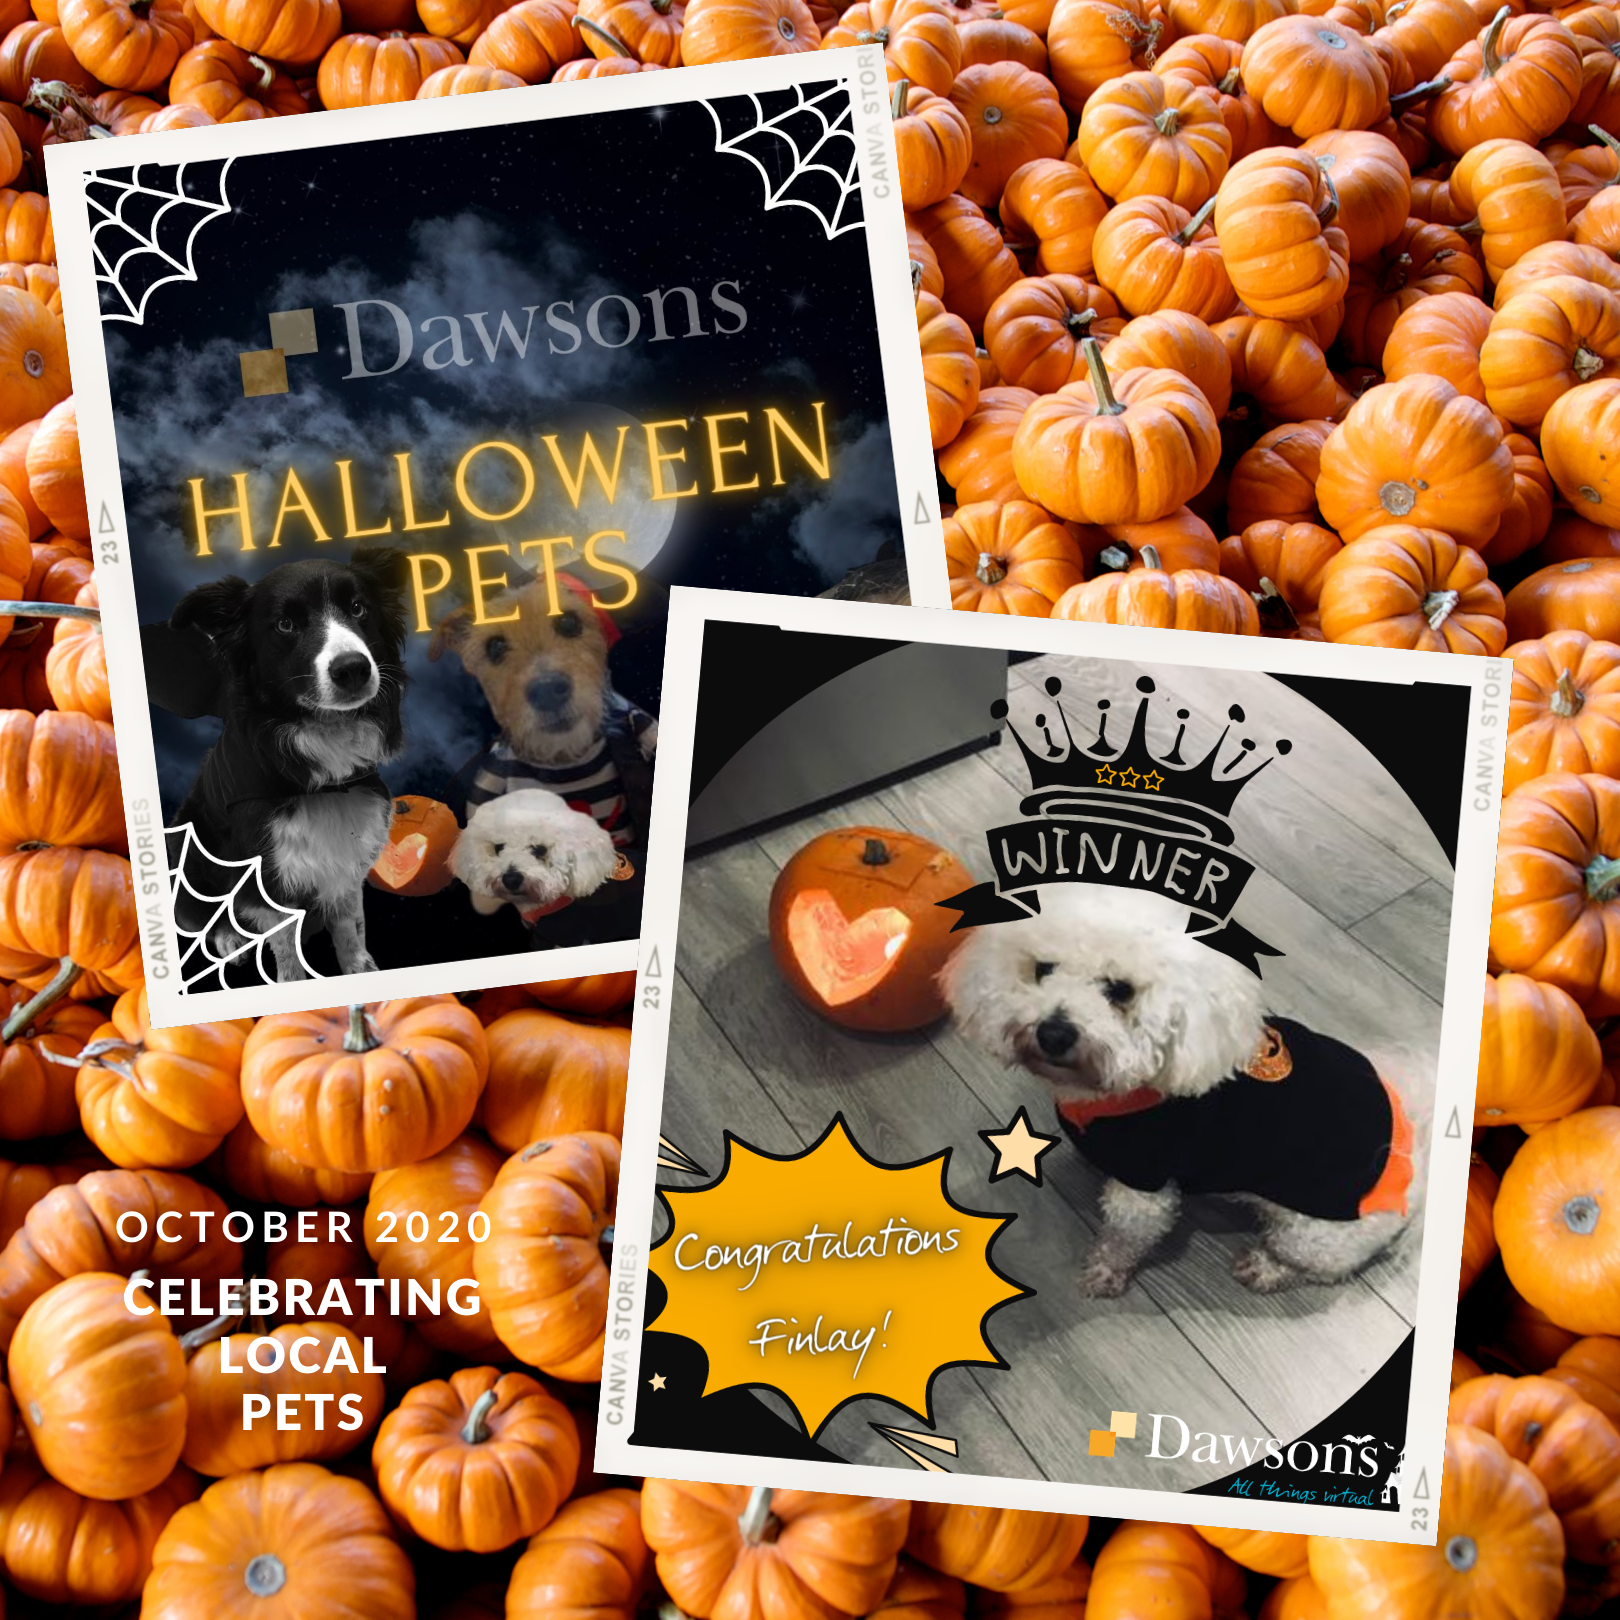 Dawsons hallowe'en competition for pets in Swansea with Safelight Images